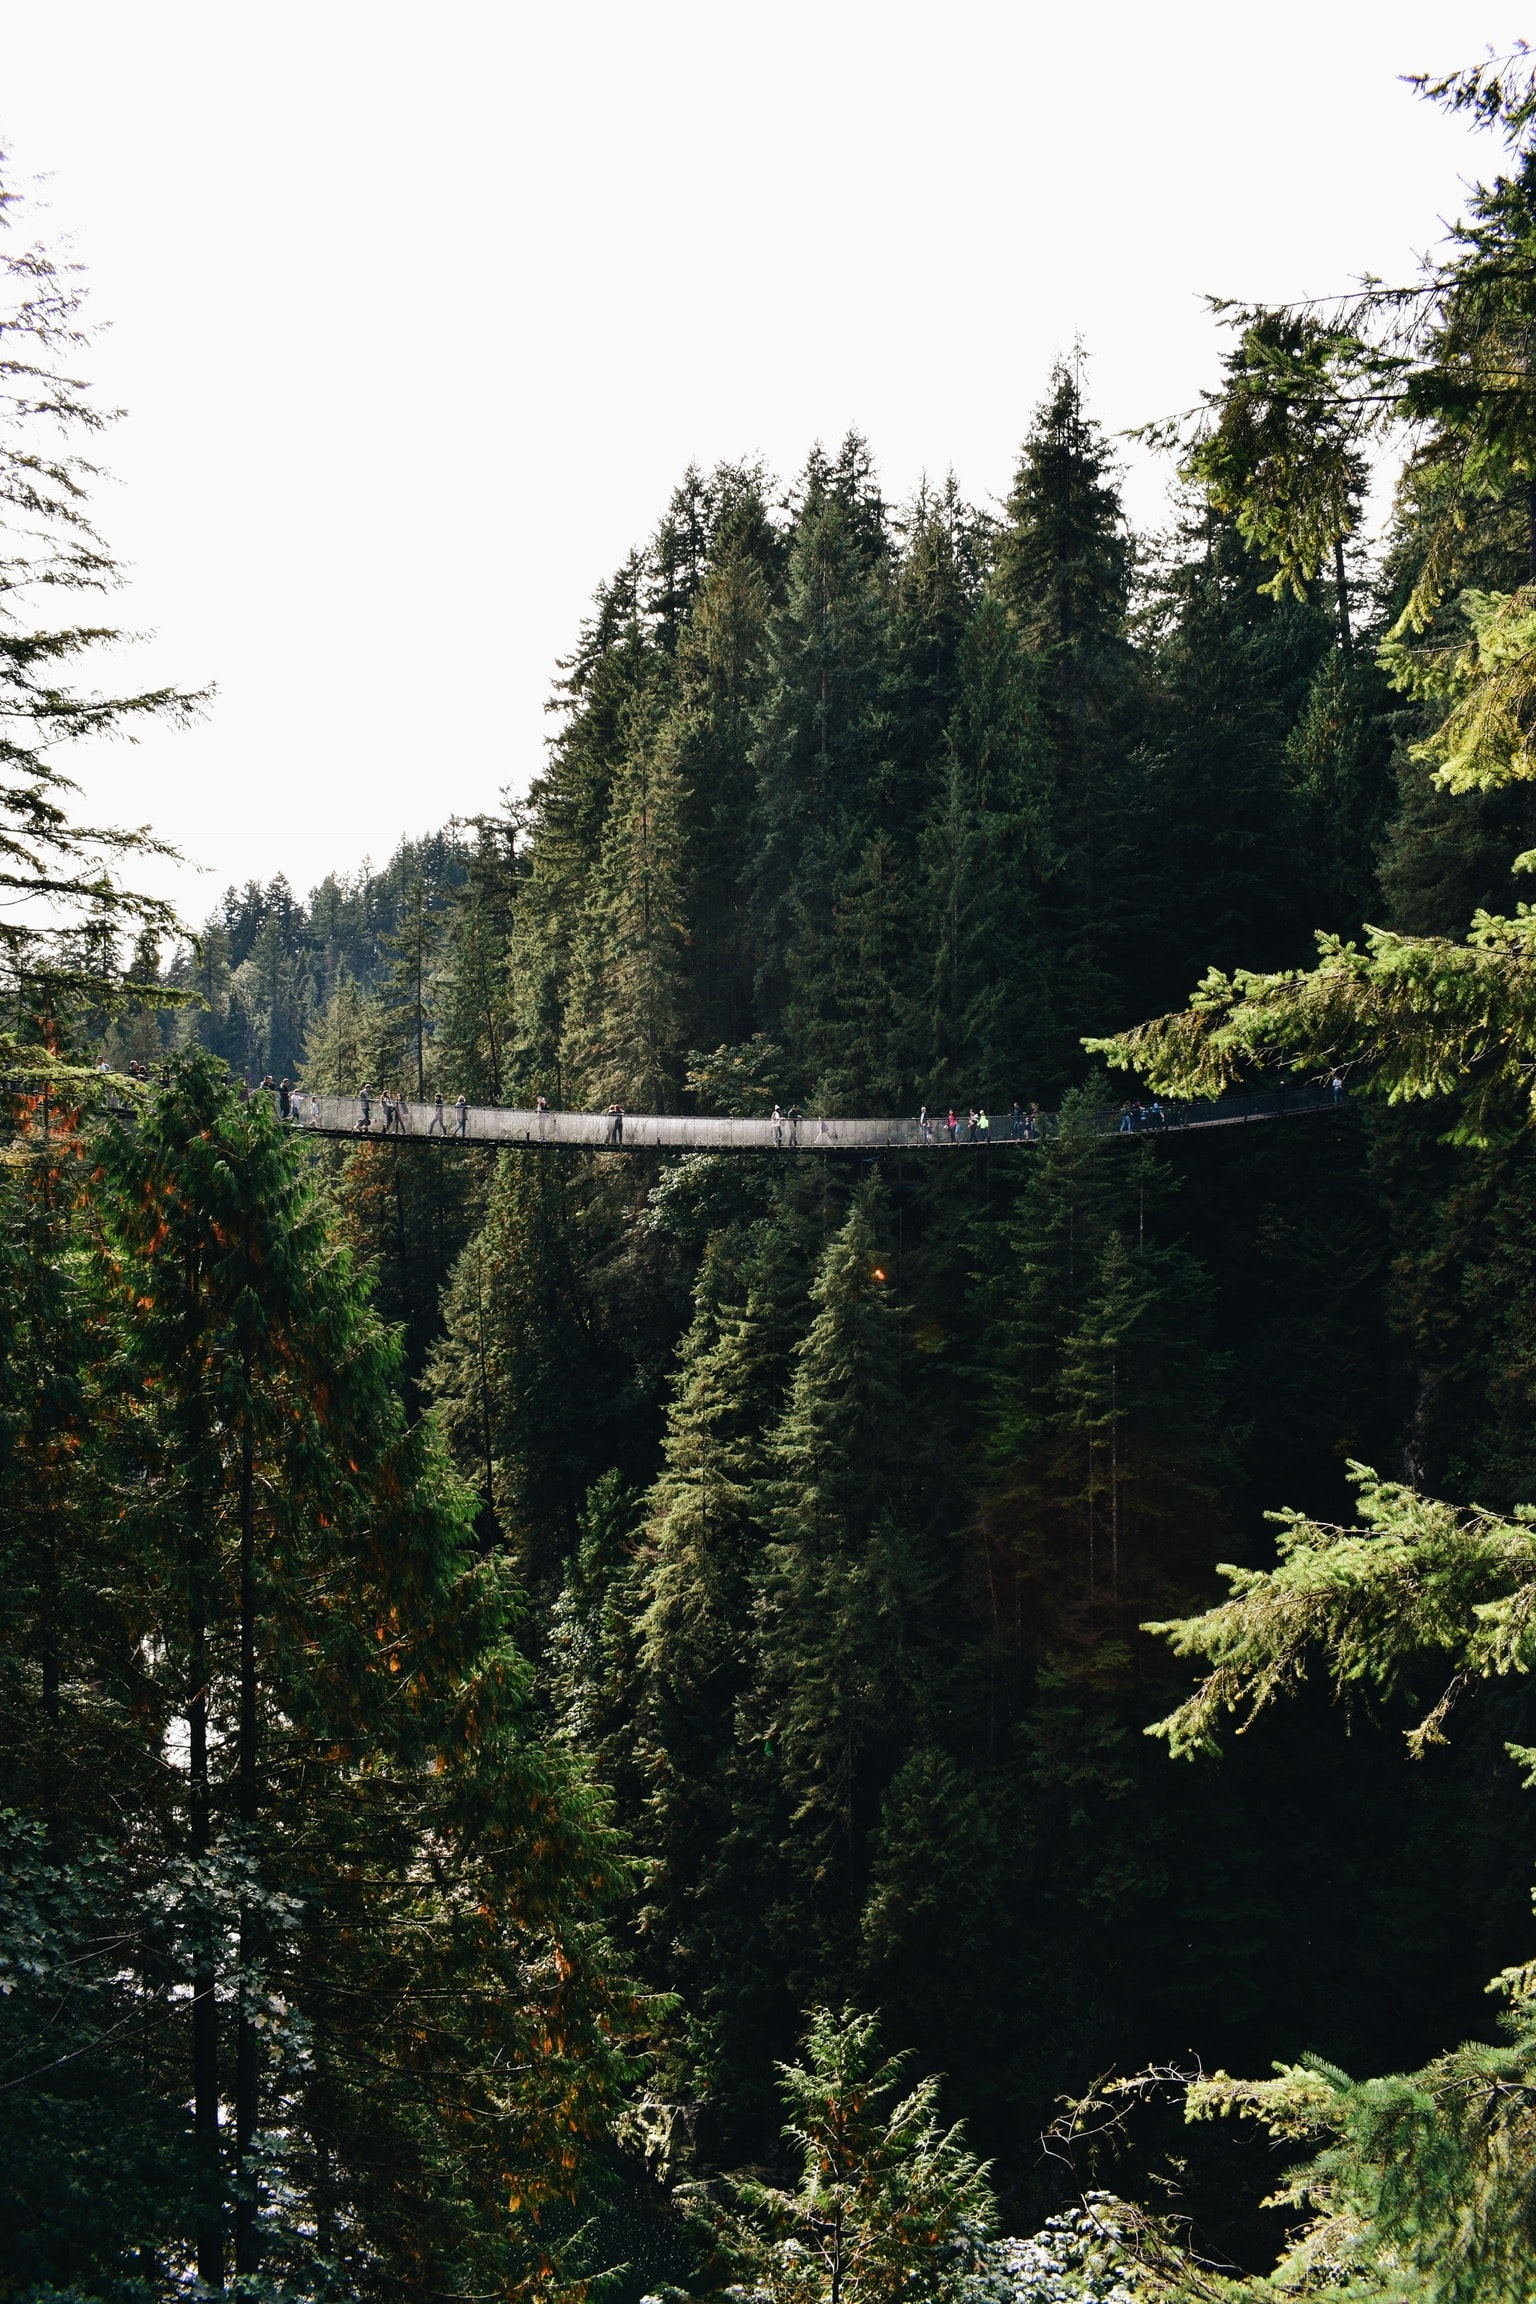 hanging bridge surrounded by forest